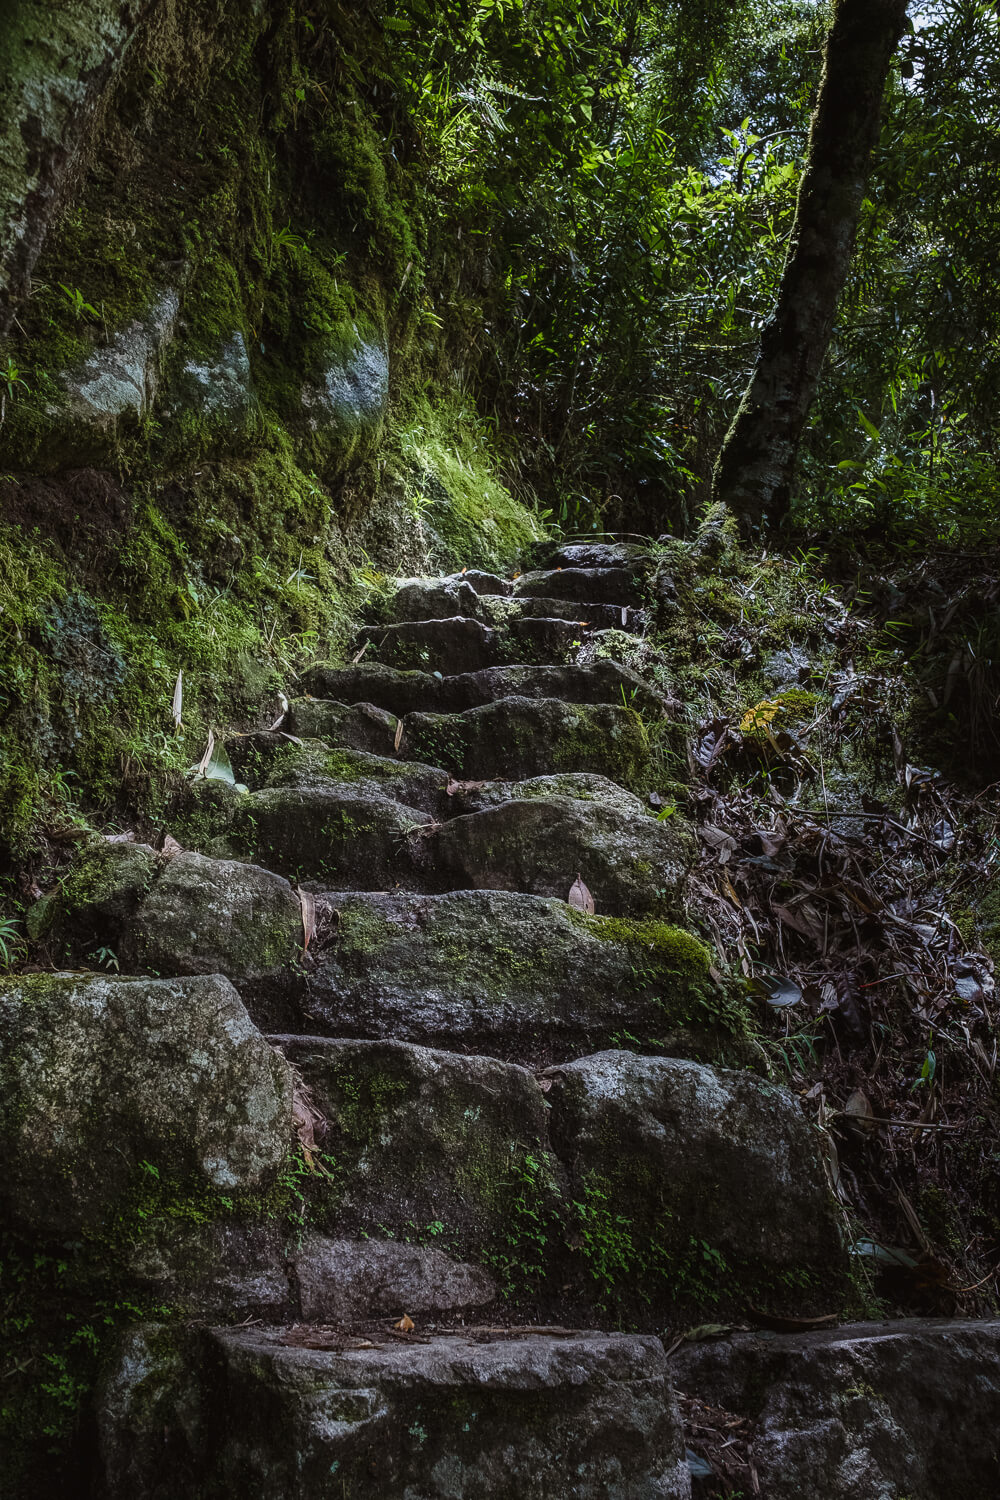 "Steps on the short Inca Trail. Travel photography and guide by © Natasha Lequepeys for ""And Then I Met Yoko"". #machupicchu #shortincatrail #2dayincatrail #incatrail #aguascalientes #sacredvalley #peru #travelguide #photoblog #travelblog #travelphotography #landscapephotography #travelitinerary #machupicchuitinerary #fujifilm #southamerica #visitperu #dayhike #ancientruins #hiking"